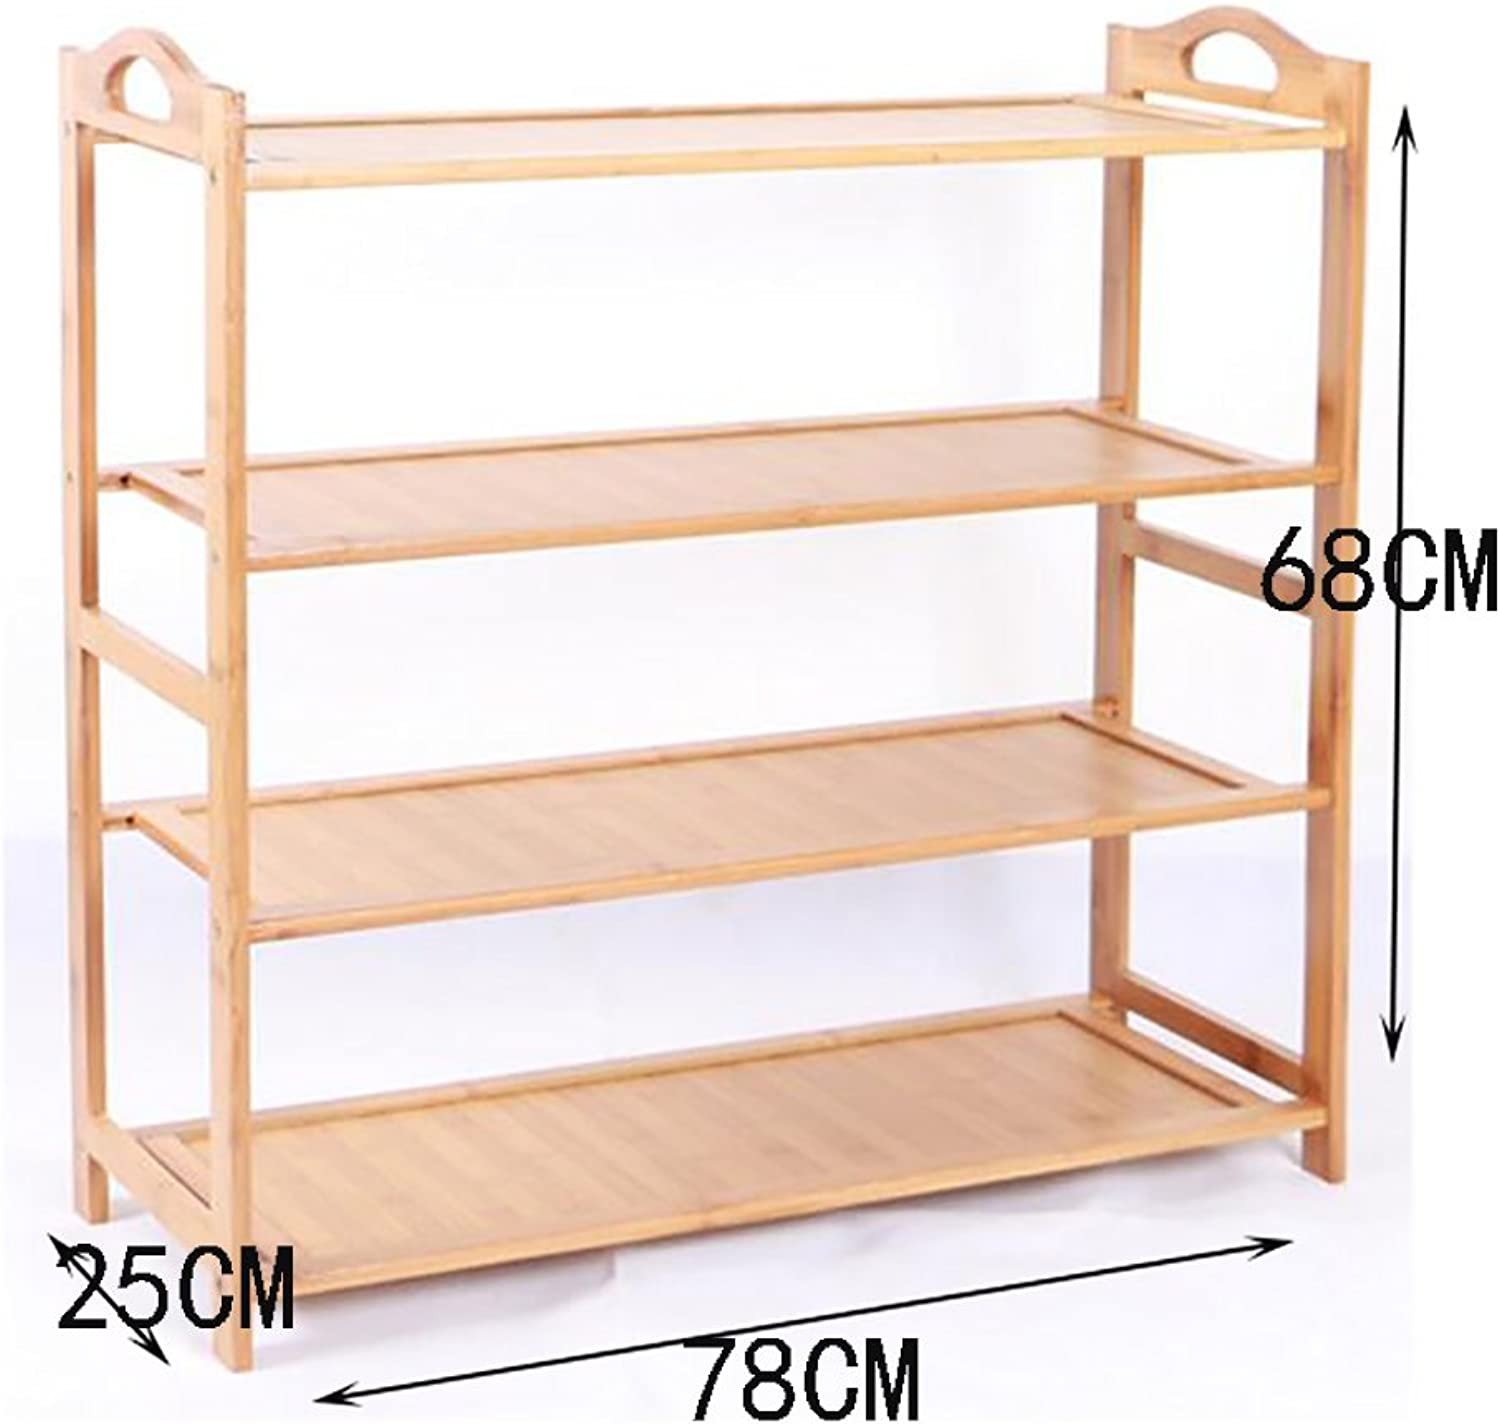 shoes Bench Organizing Rack Bamboo Simple shoes Rack Multi - Storey shoes Rack Wooden shoes Rack Multi - Storey Dormitory shoes Rack Living Room Shelves (color   3, Size   78CM)